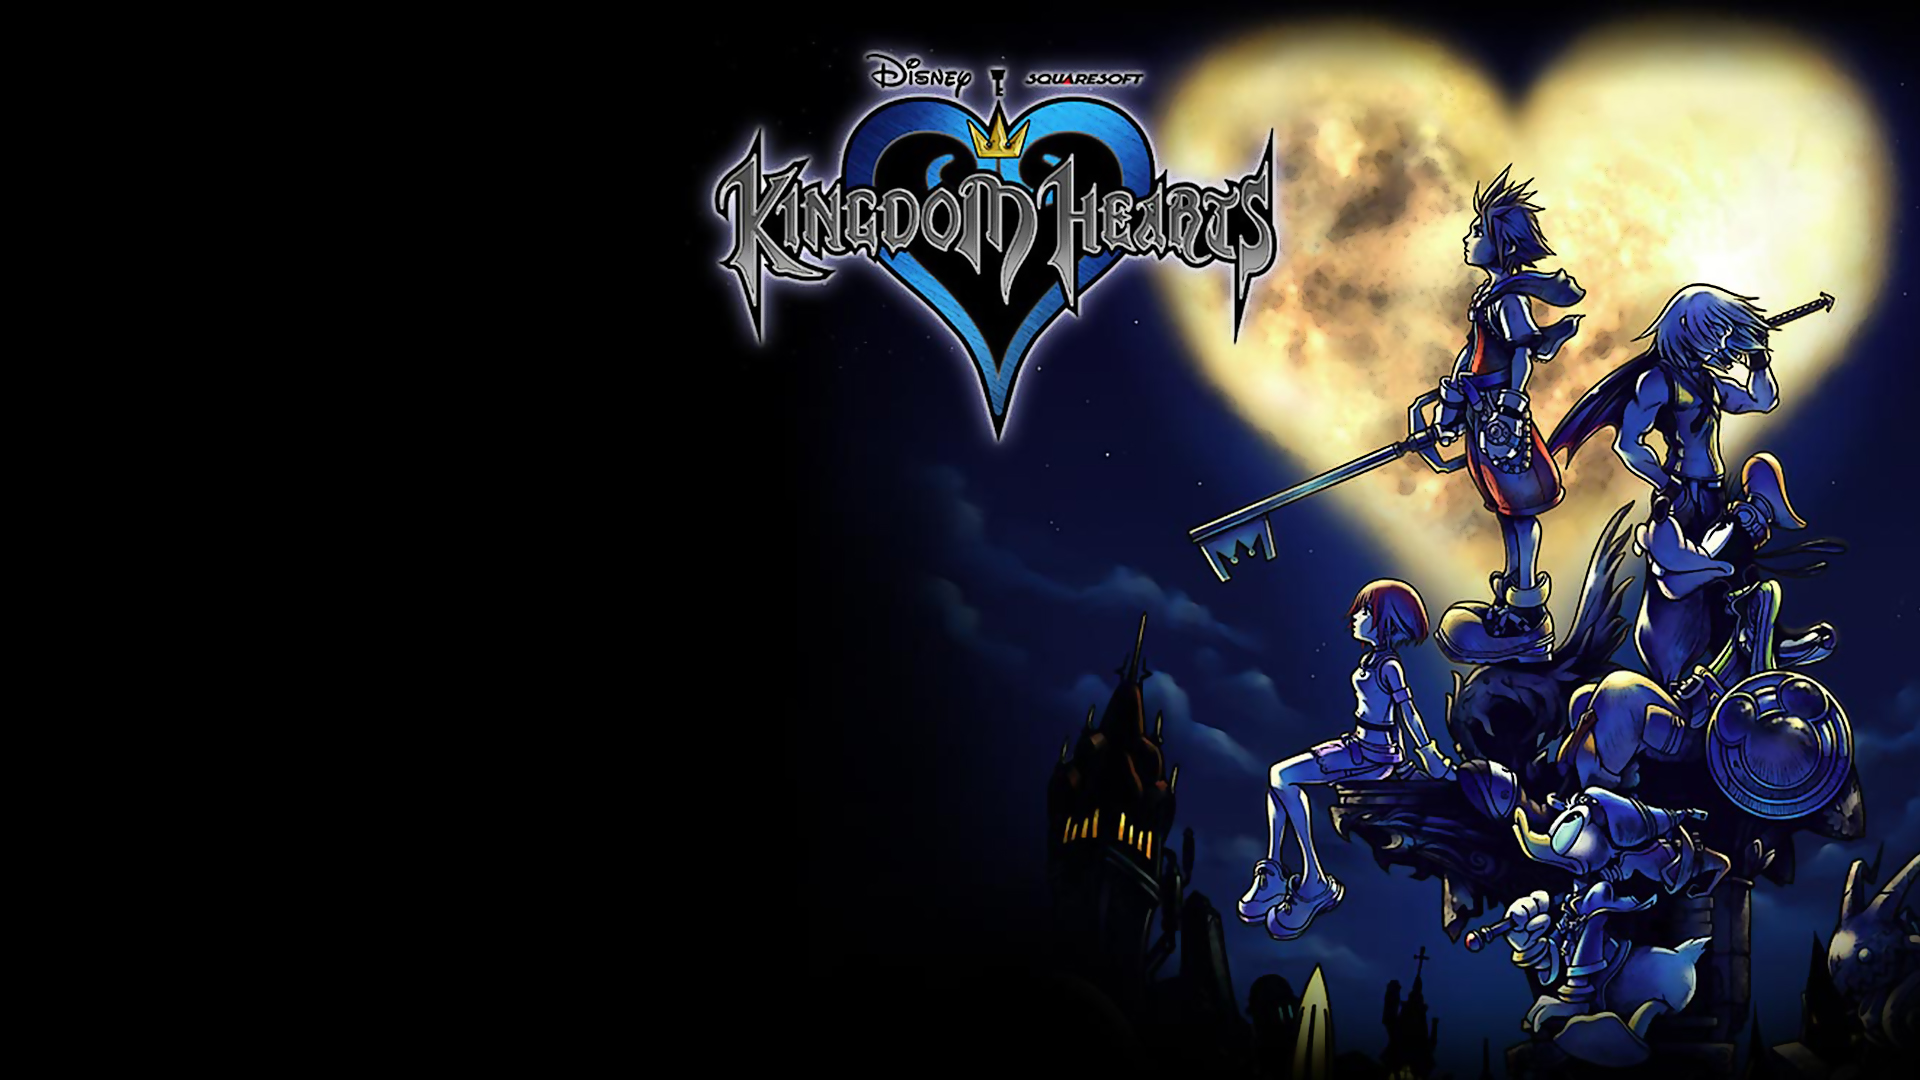 Kingdom Hearts Wallpaper Hd wallpaper   928300 1920x1080